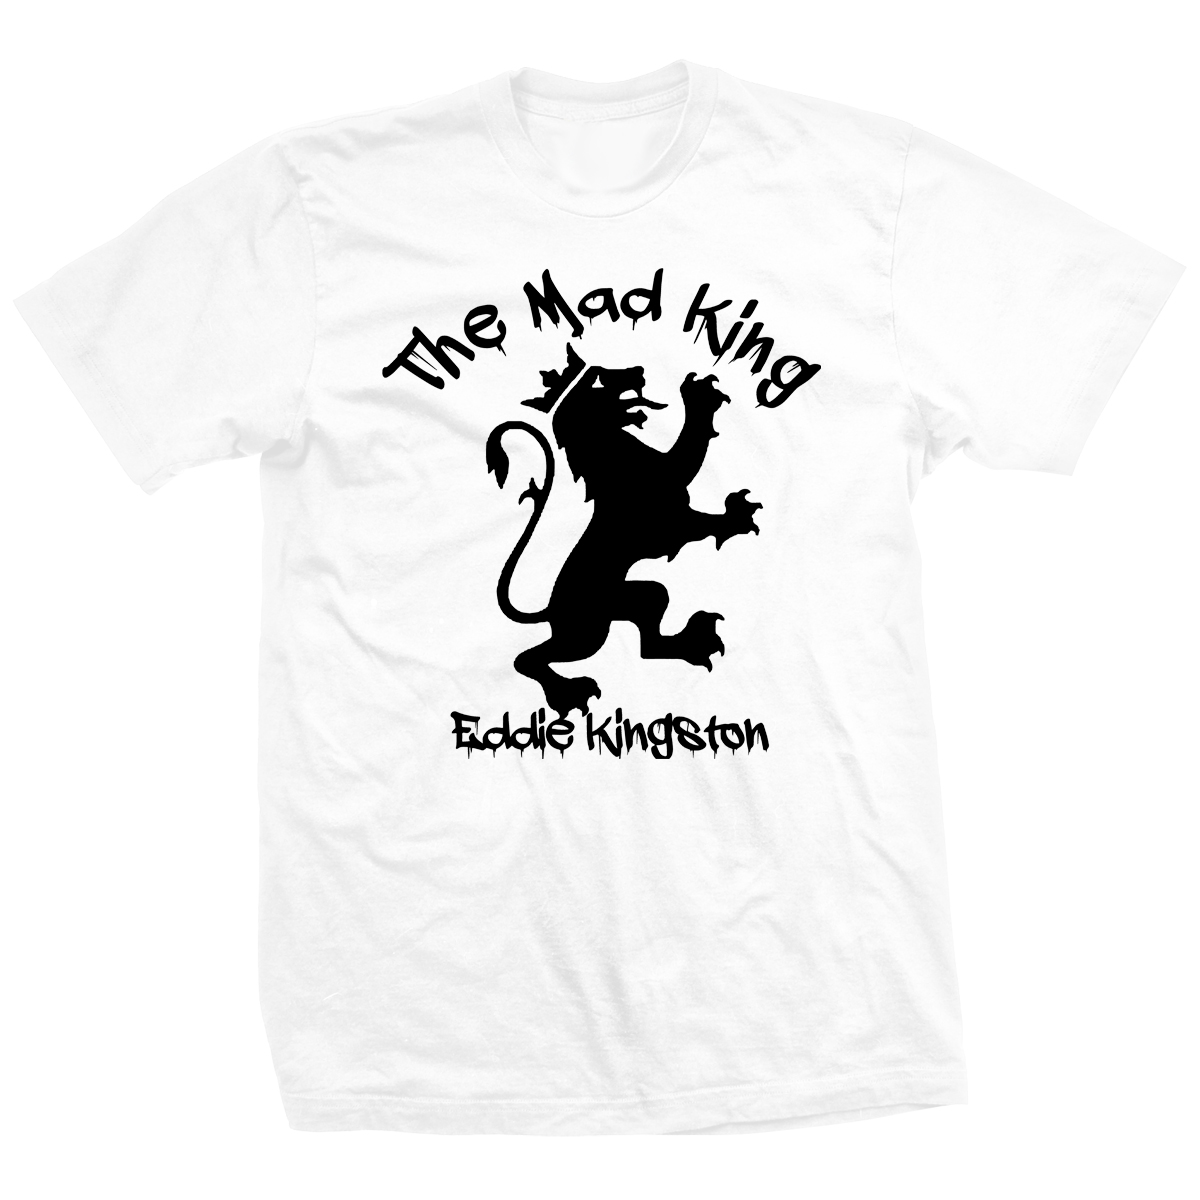 Kingston Track T-shirt